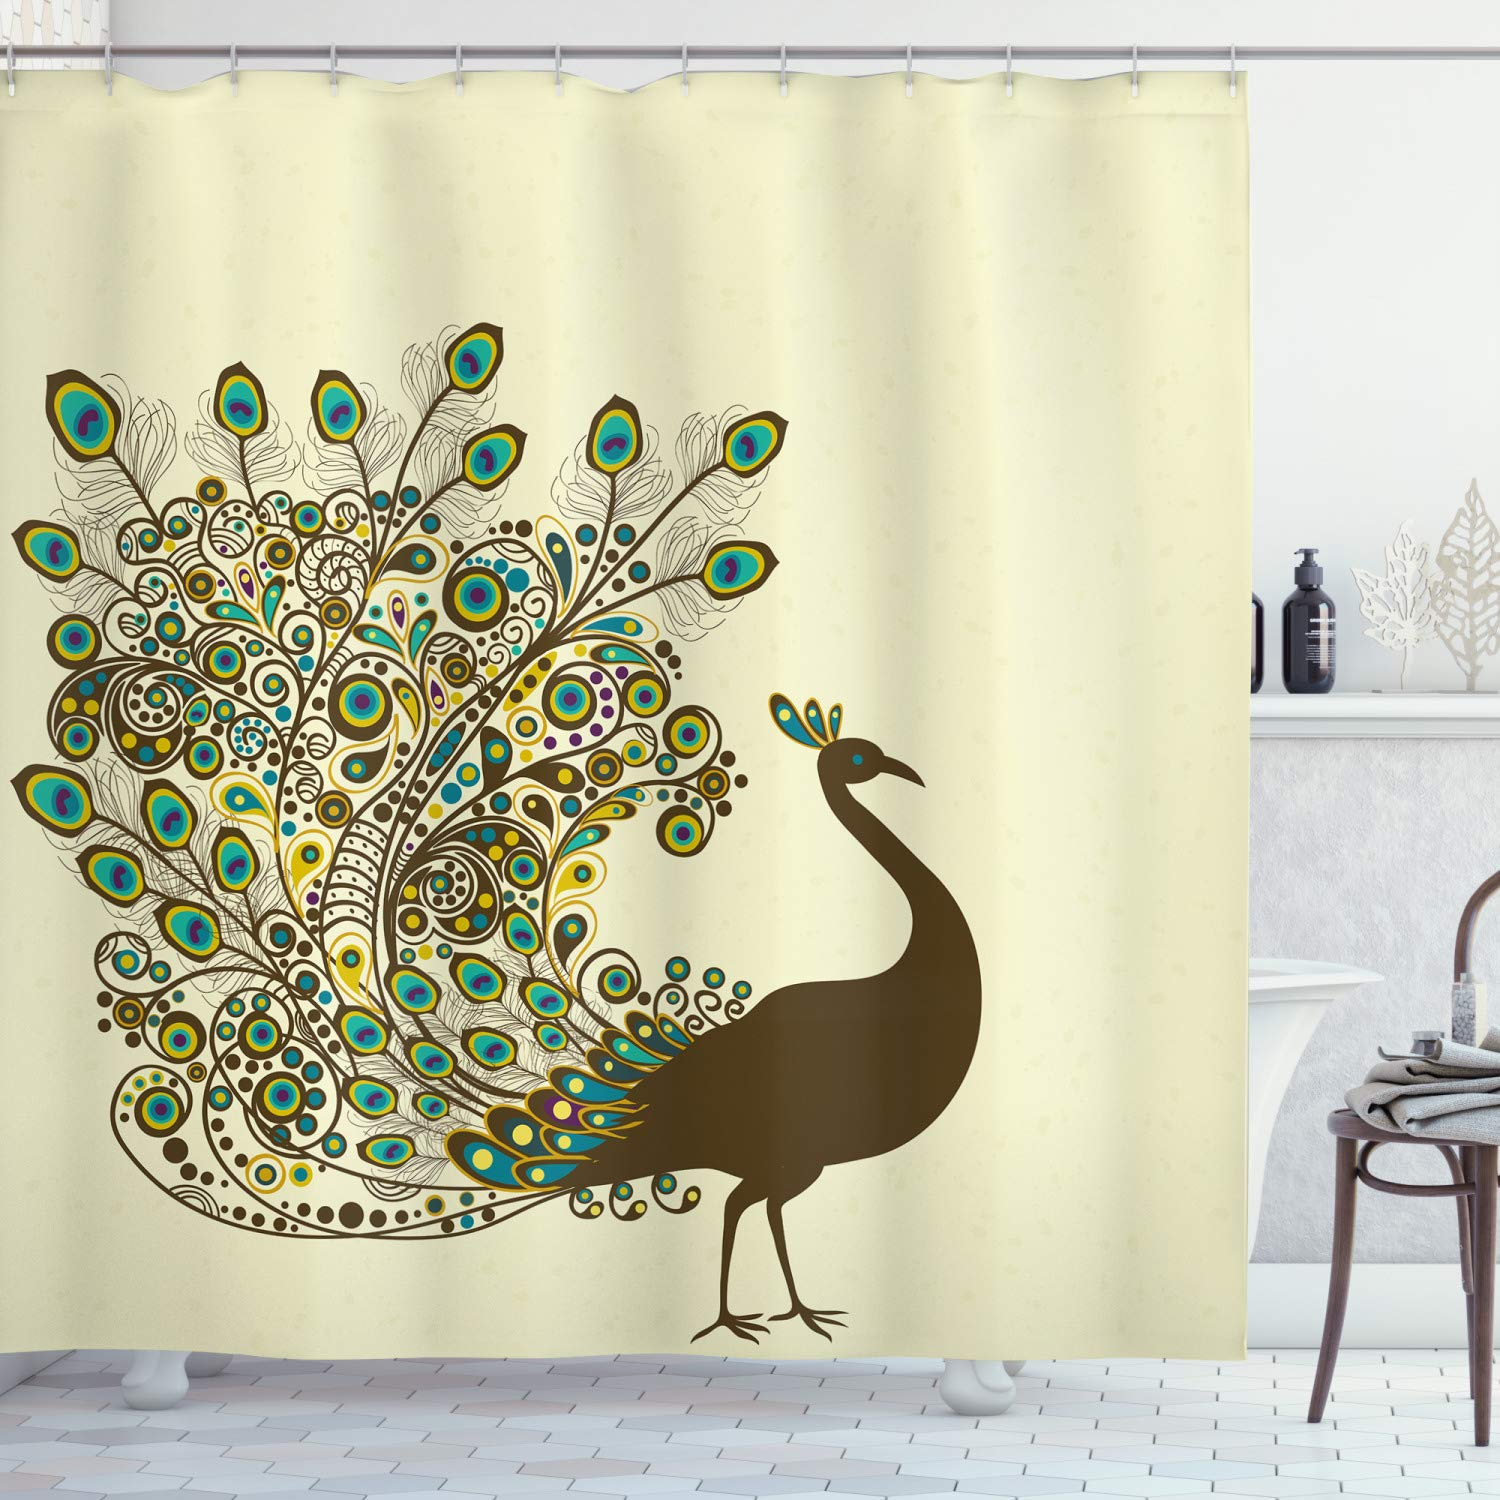 Ambesonne Peacock Shower Curtain Detailed Peacock Bird Profile Wings Open On Beige Background Exotic Artwork Image Cloth Fabric Bathroom Decor Set With Hooks 70 Long Fawn Blue